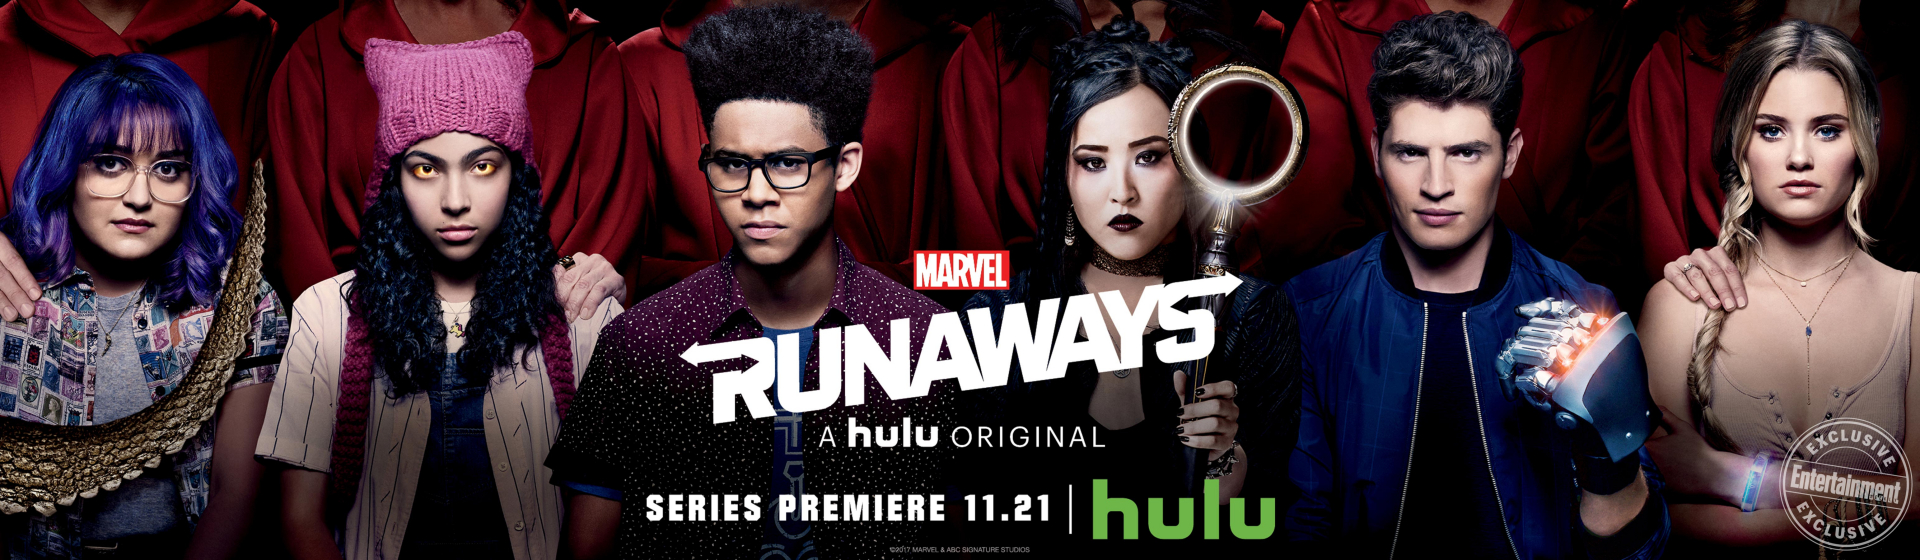 Runaways - Season 1 (New) - Mp4 x264 AC3 1080p